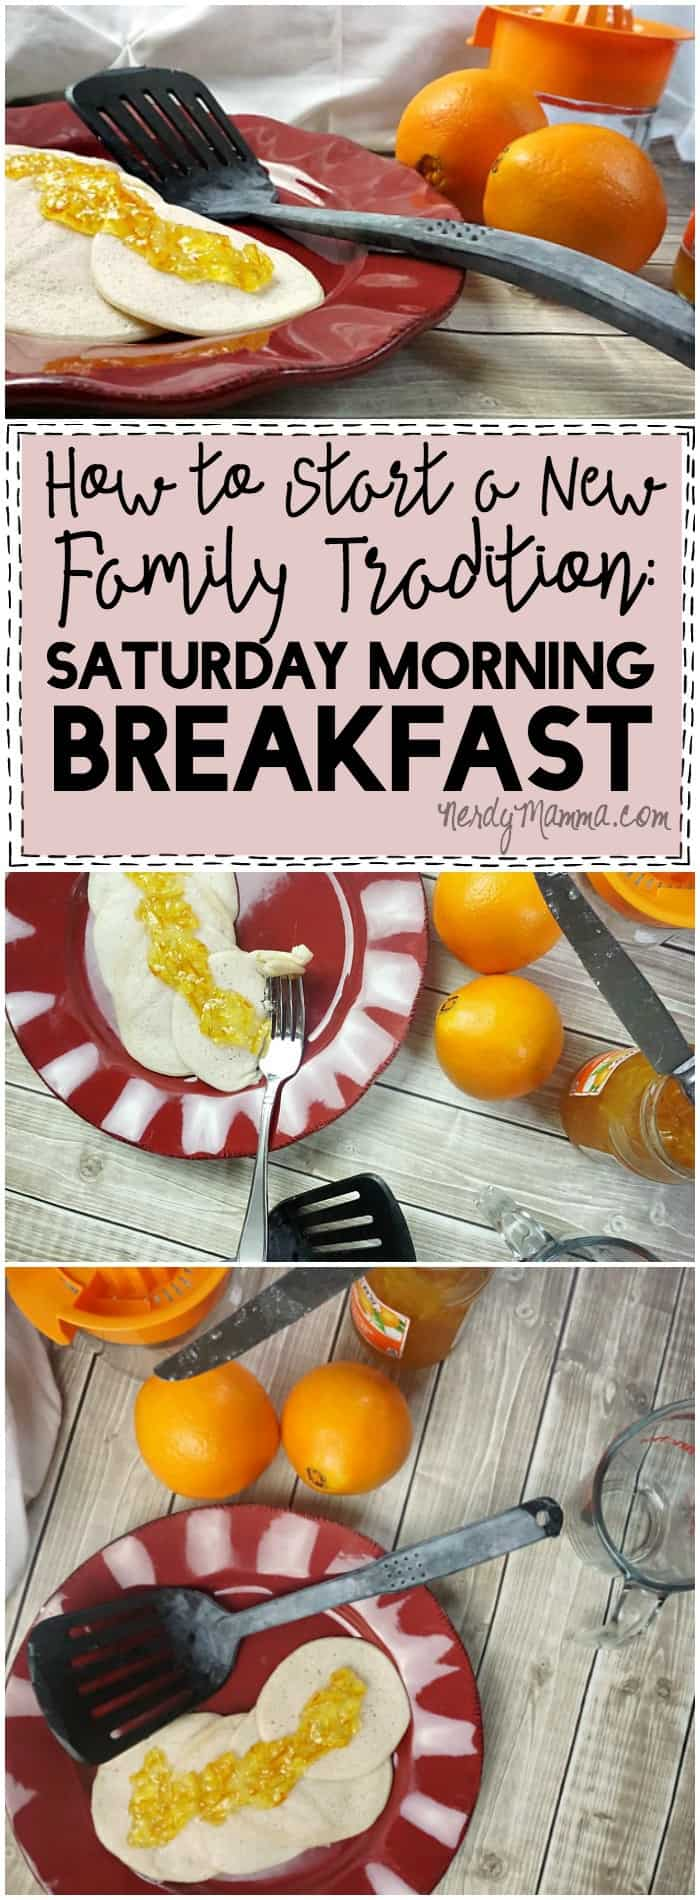 I love this--what a simple way to free up your weekends from shopping and start a new family tradition of having Saturday Morning Breakfast together!